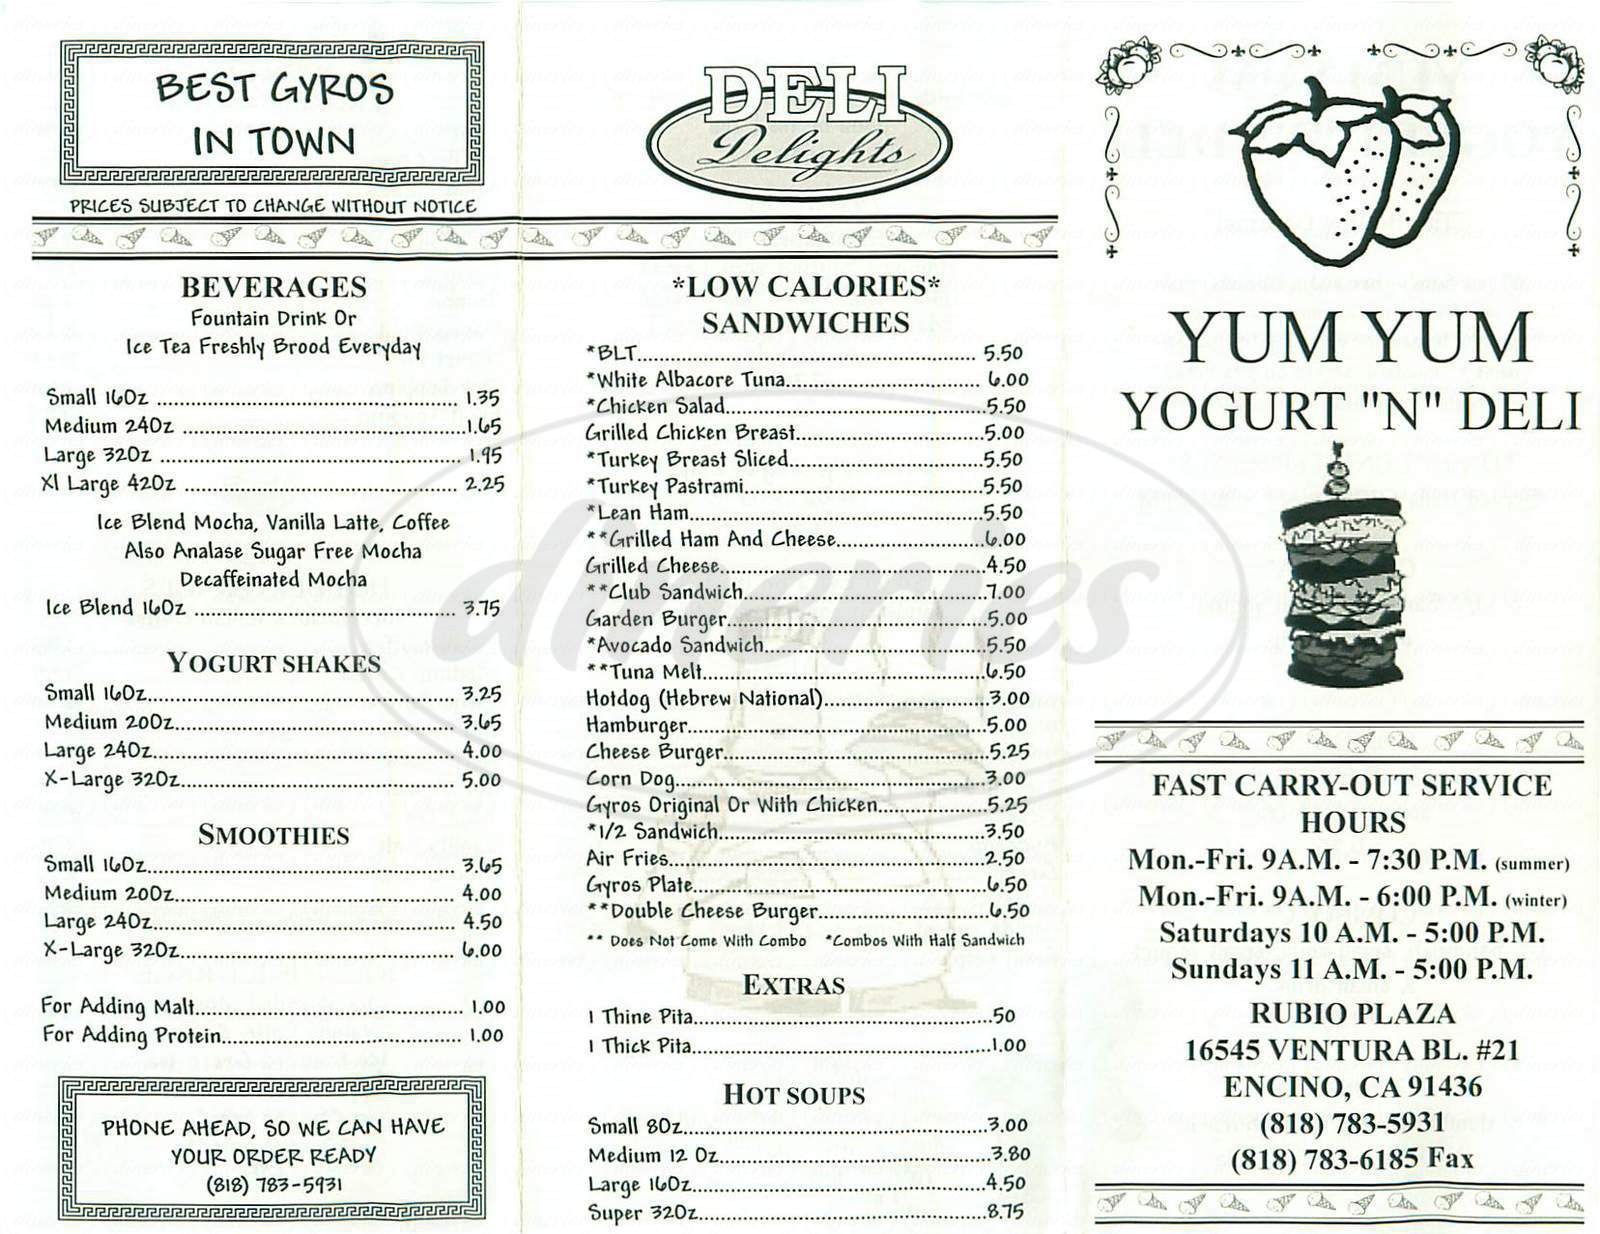 menu for Yum Yum Yogurt & Deli